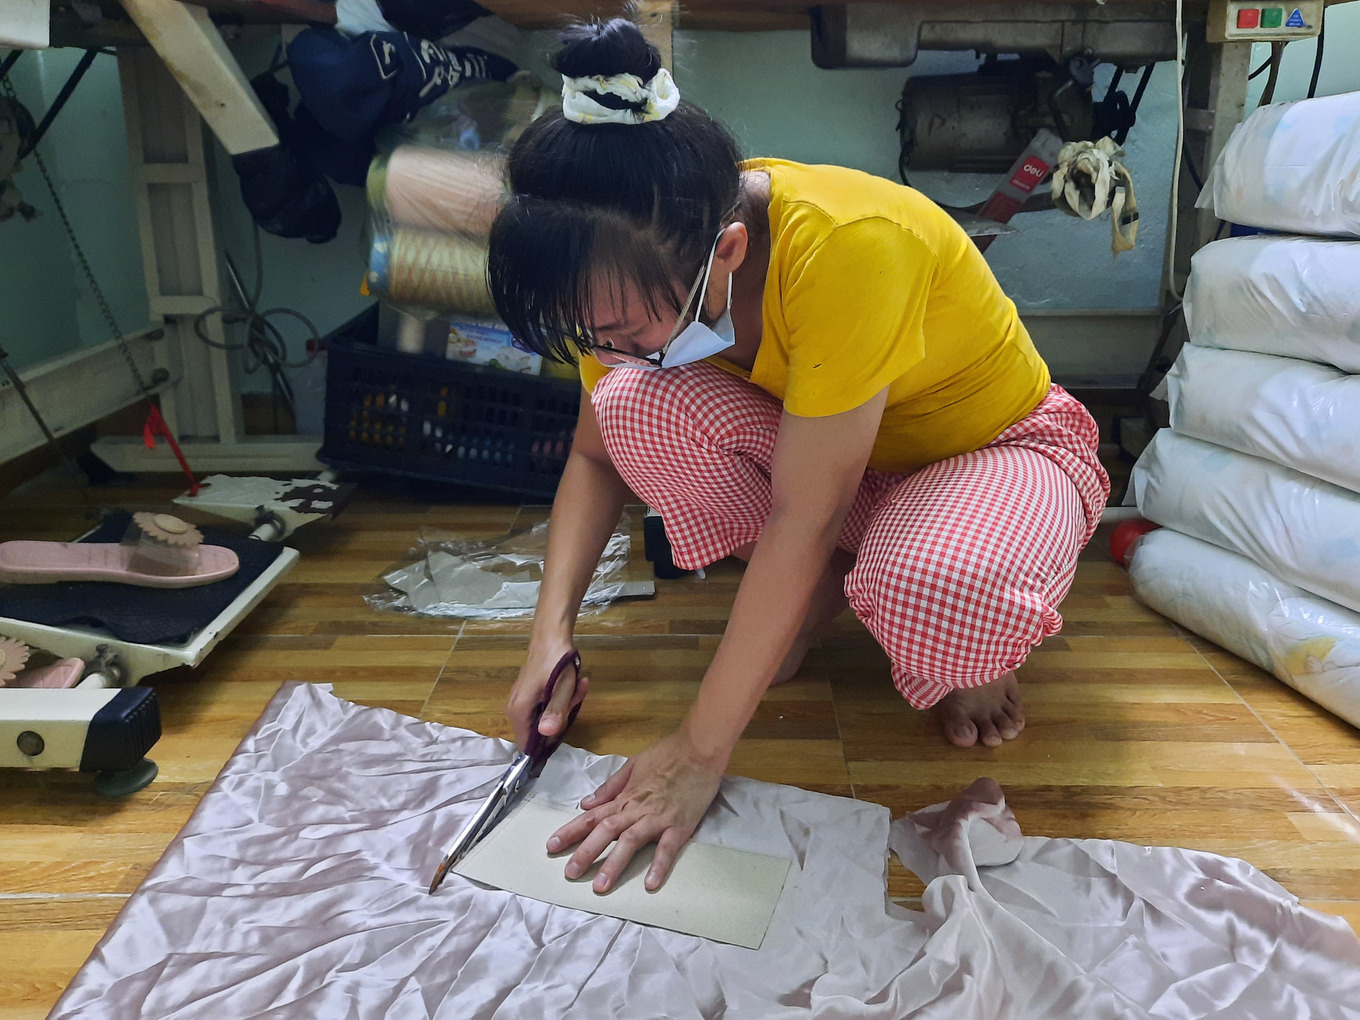 Thuong designs clothes for a customer in Go Vap District. Photo by VnExpress/Diep Phan.